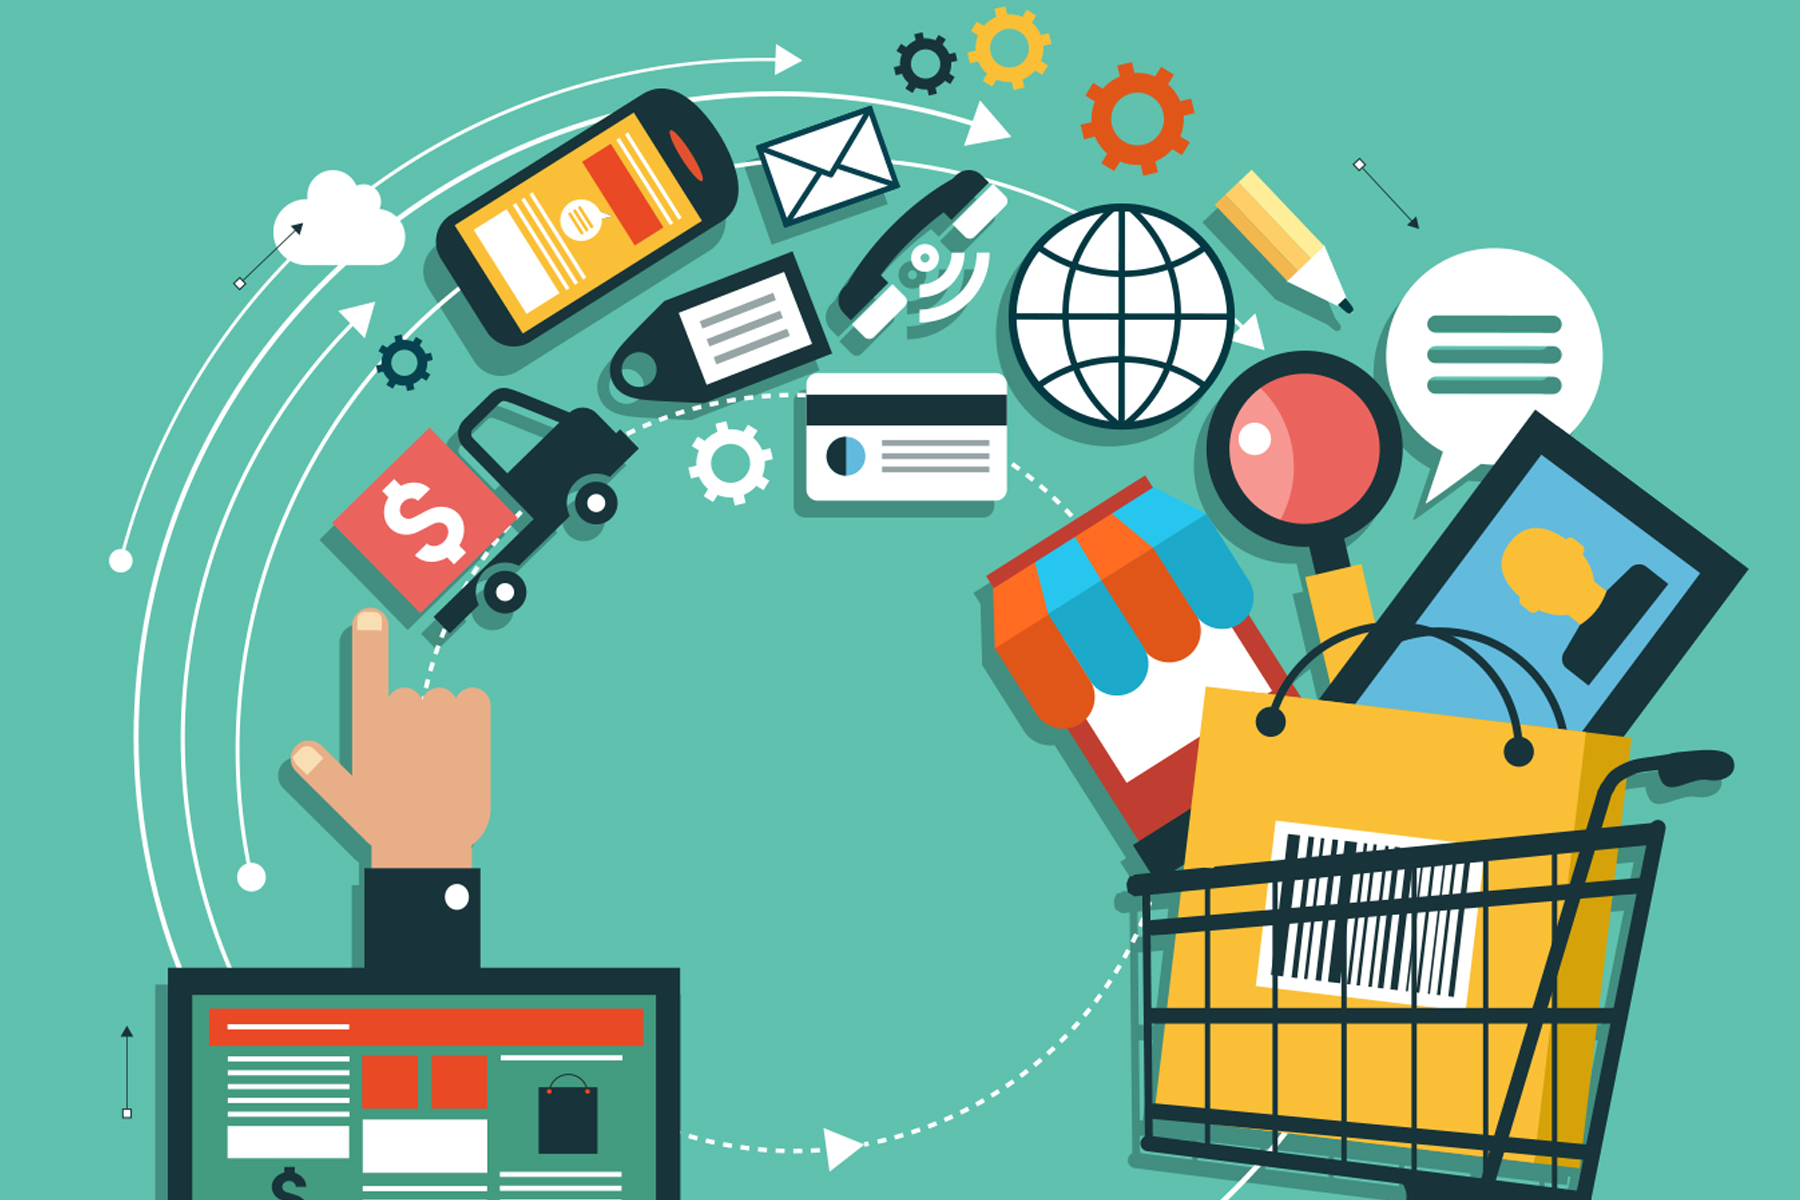 e-commerce case study Download this case study for in-depth look at how emailage risk assessment helped a global ecommerce merchant prevent $19 million worth of fraud in over 100 countries, both online and in retail stores — a staggering 35x return on investment.